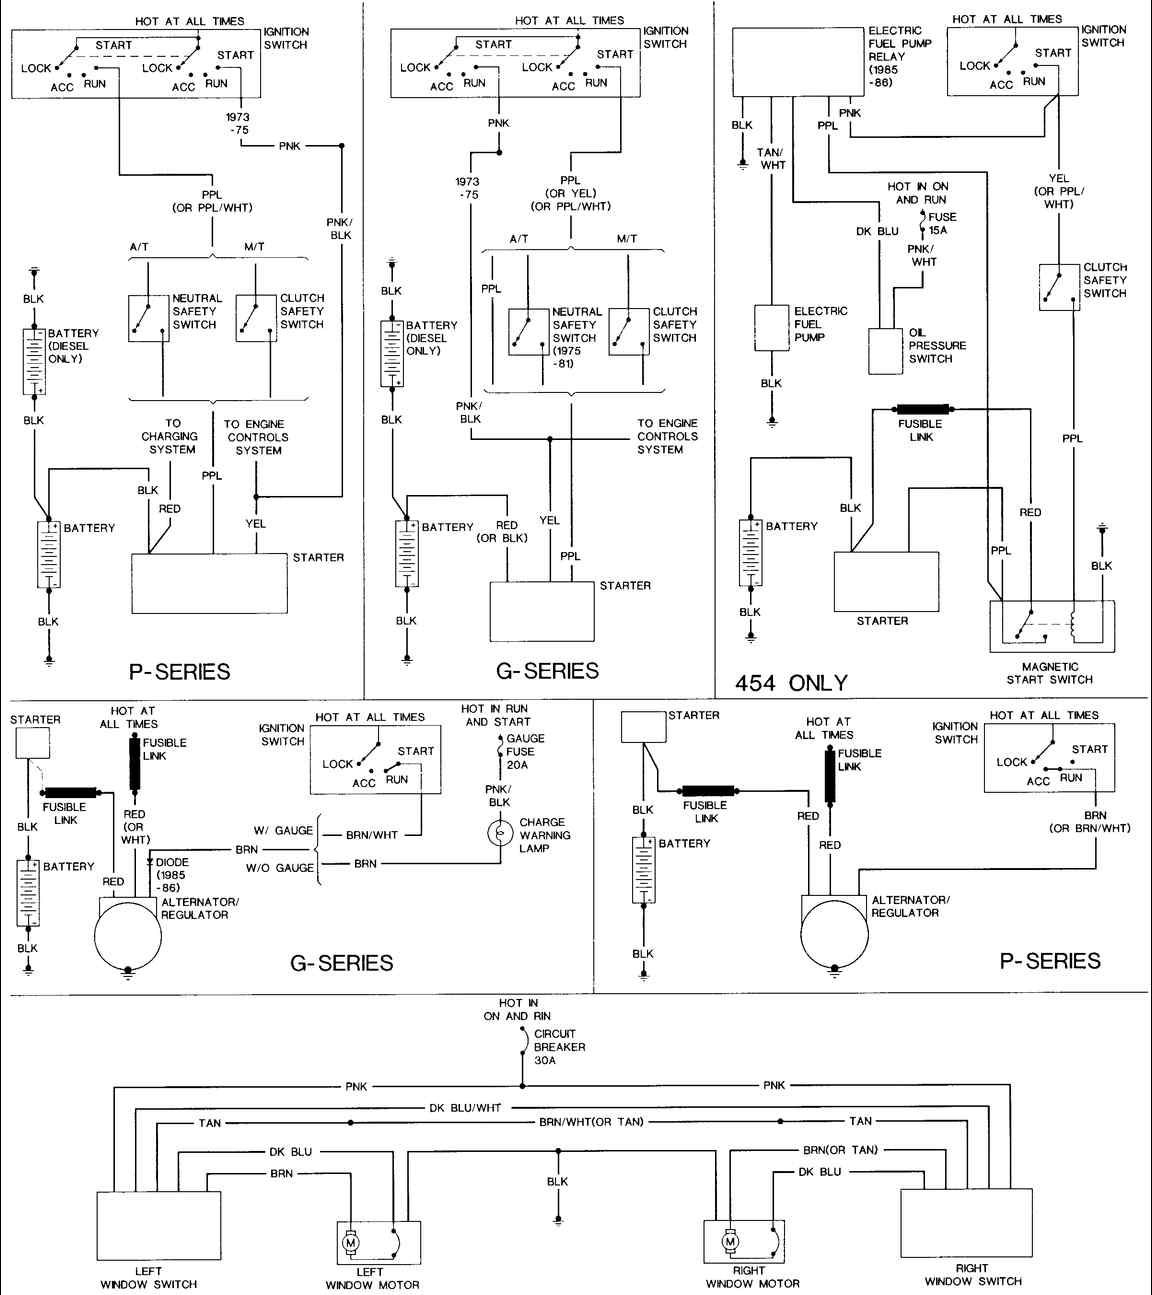 0c73623a181dc376dbb4777e2029d285 85 chevy truck wiring diagram 85 chevy van the steering column 1985 chevy truck wiring diagram free at honlapkeszites.co